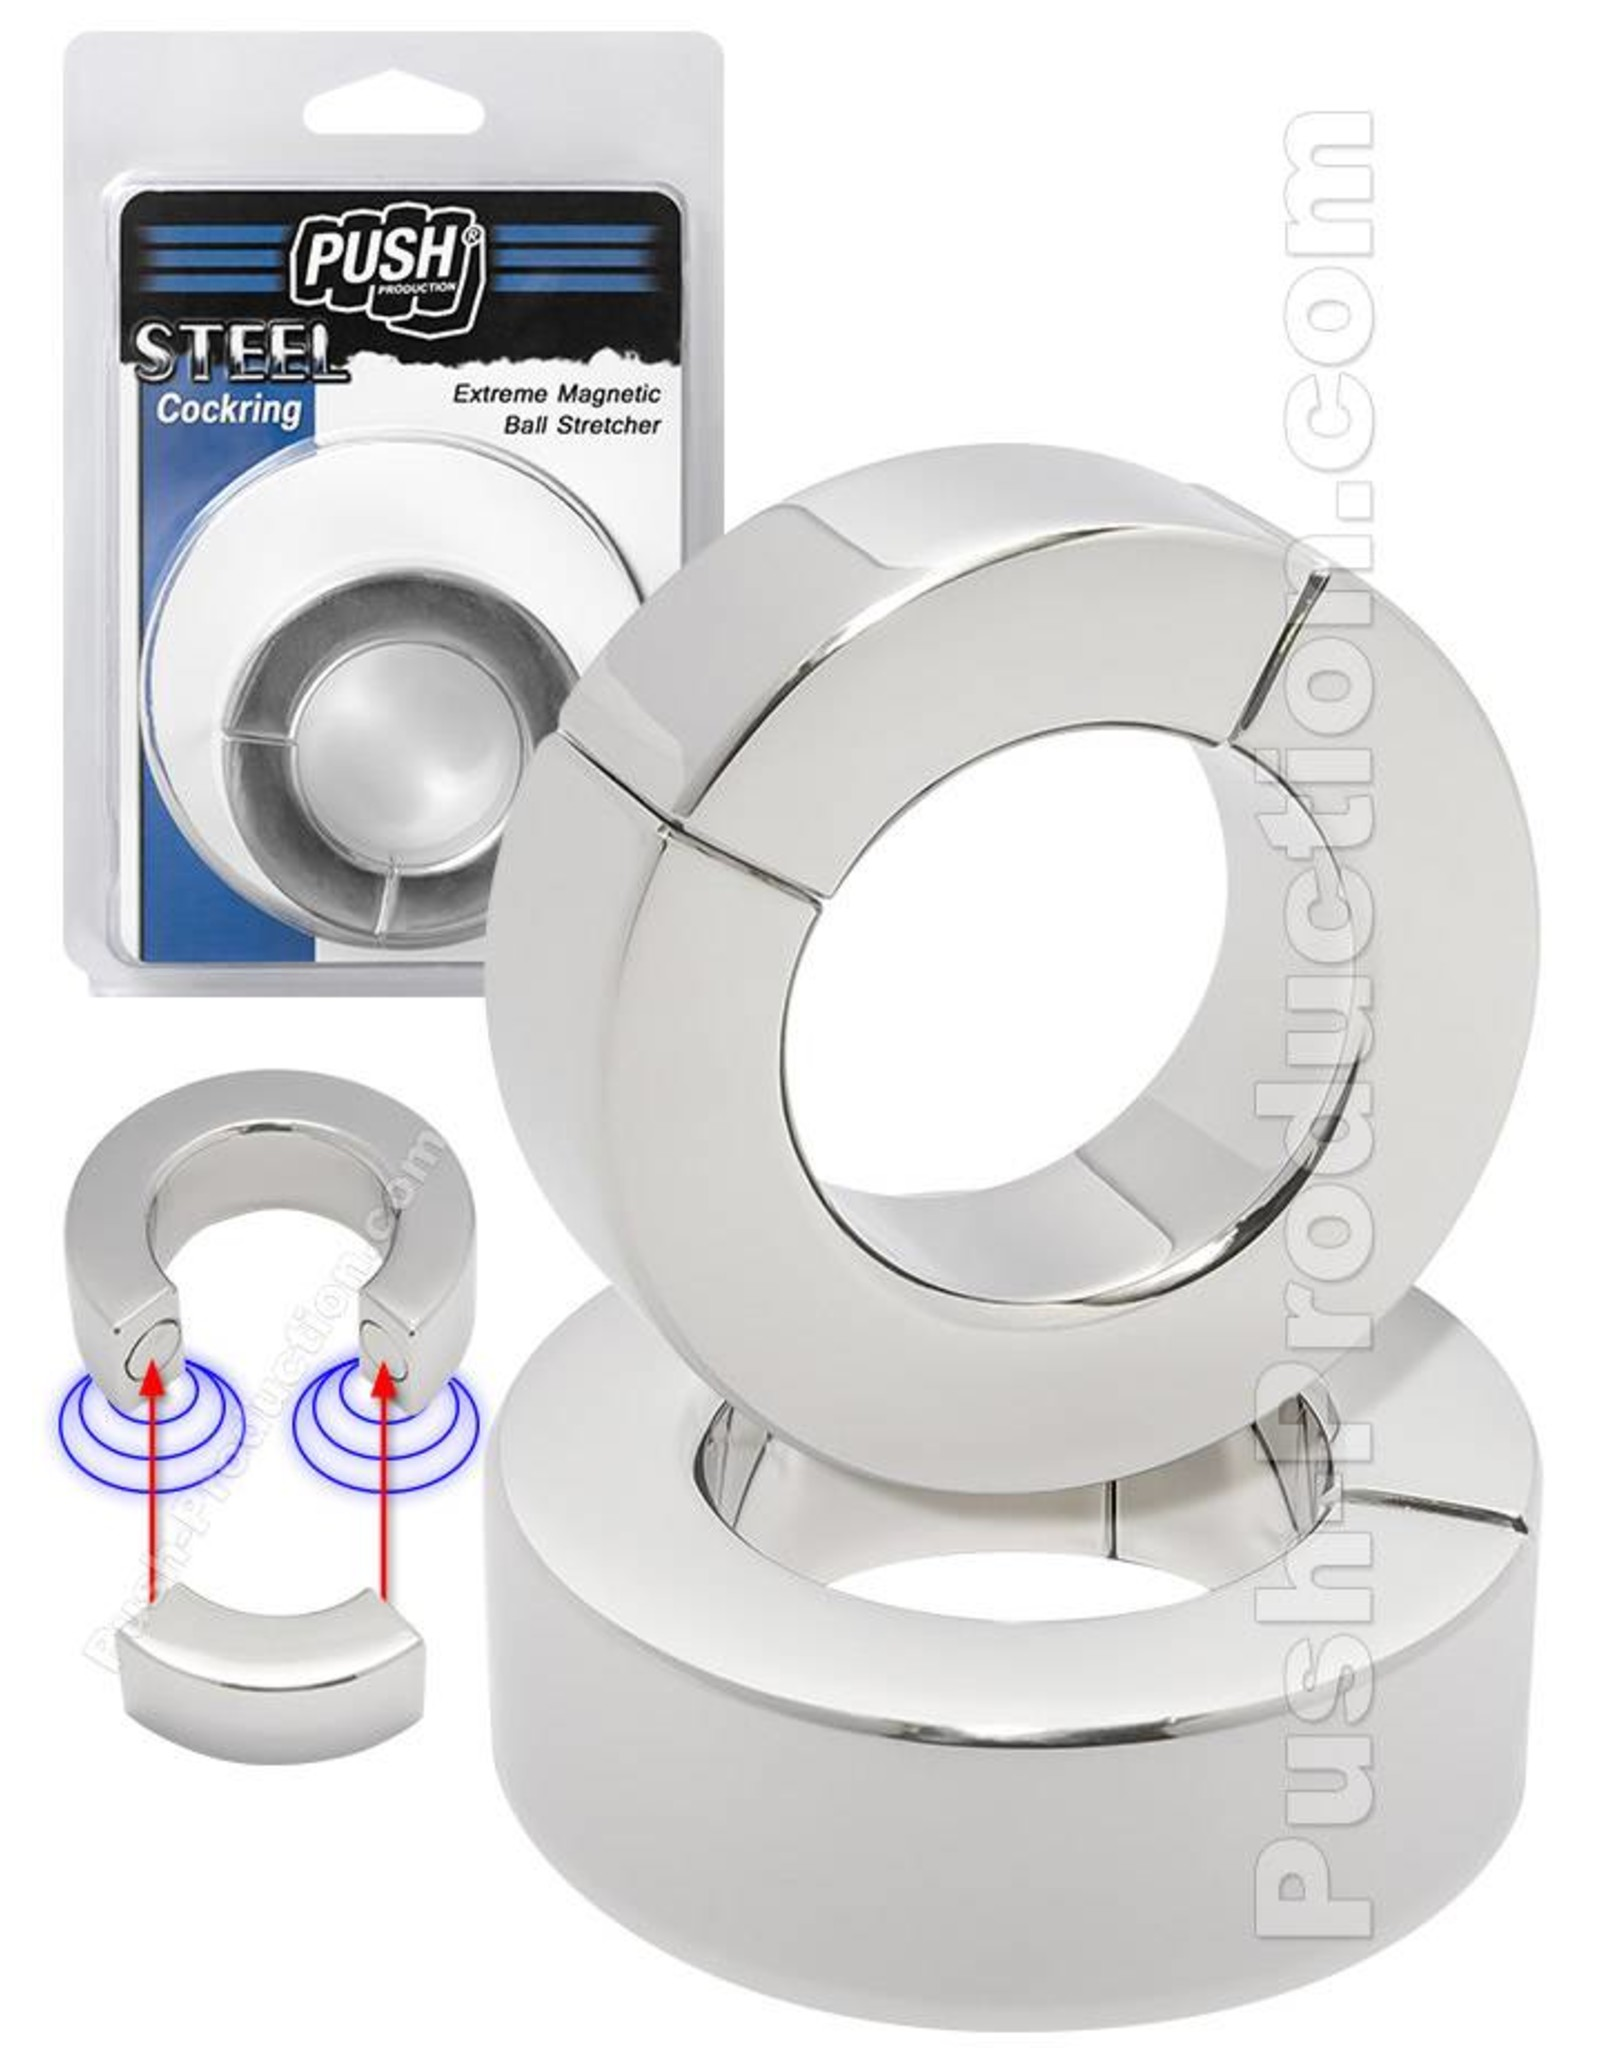 Push Steel - Extreme magnétique Ball Stretcher 20mm